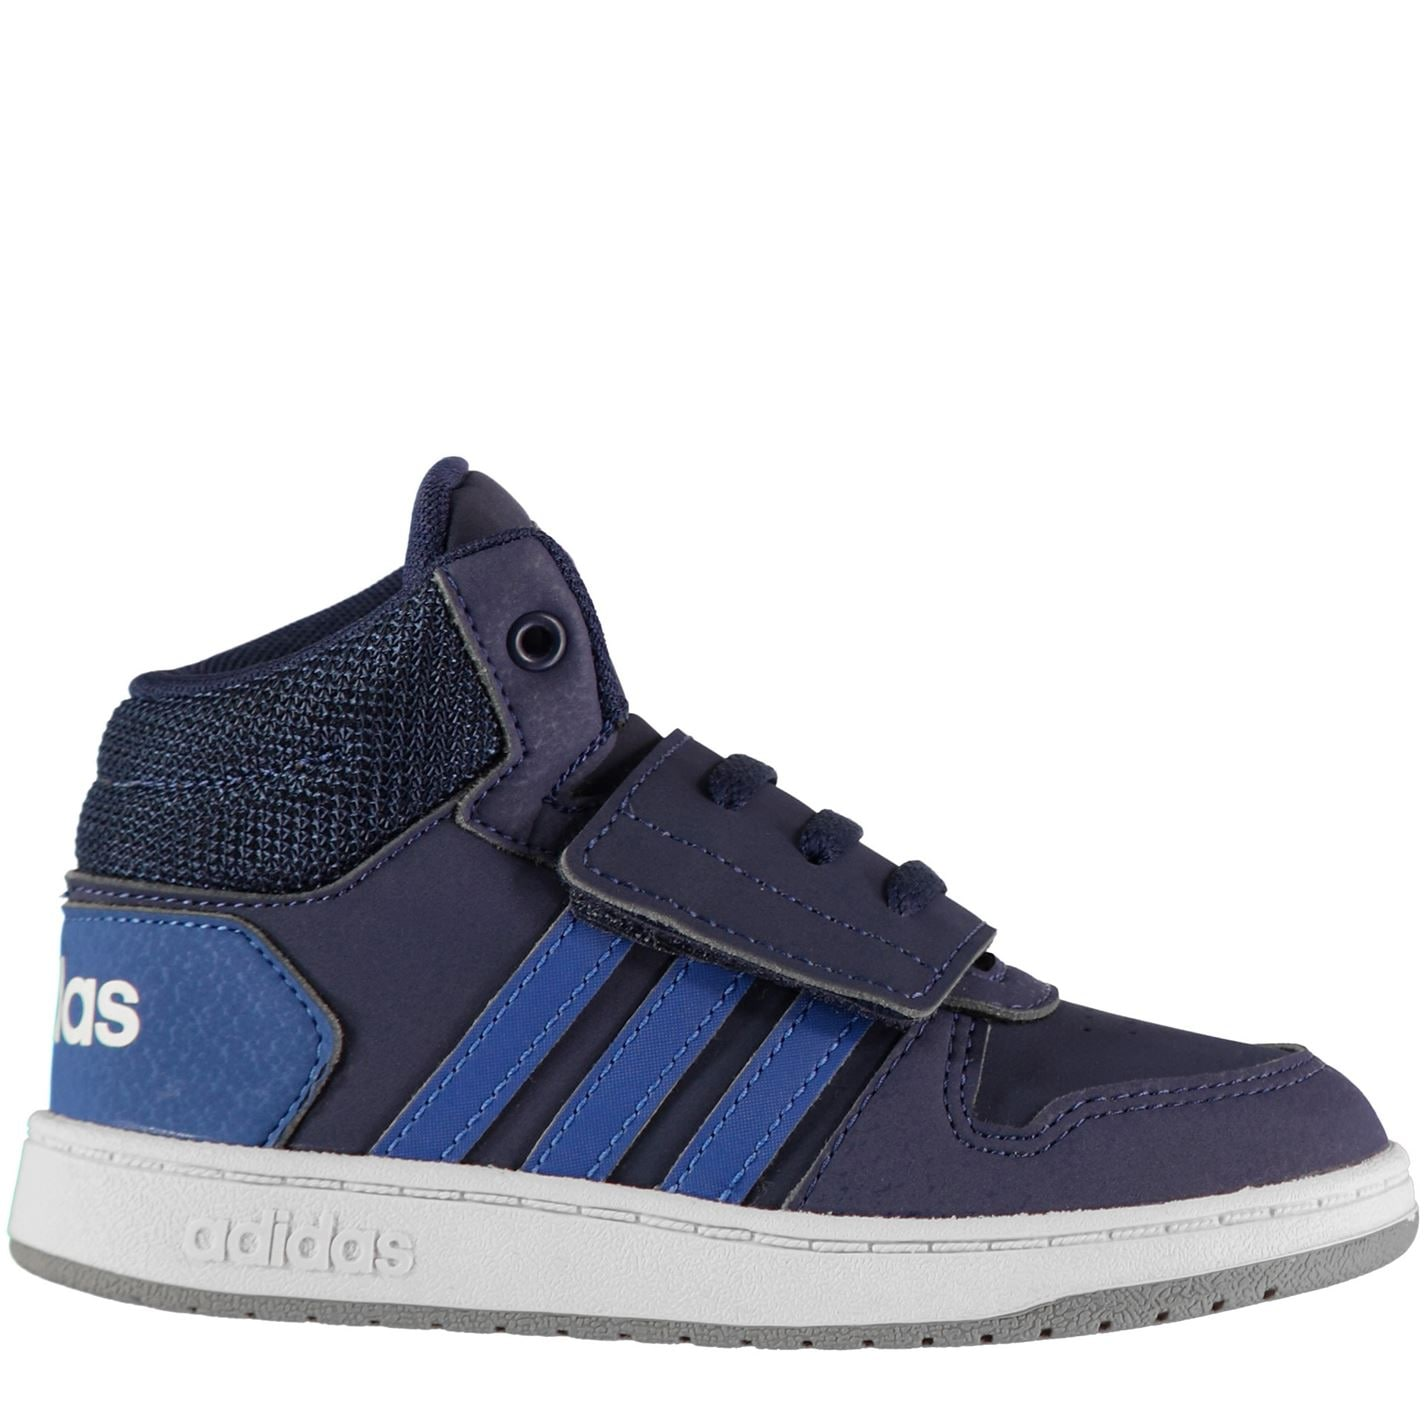 adidas Hoops High Top Trainers Infant Boys Navy/Blue/Wht